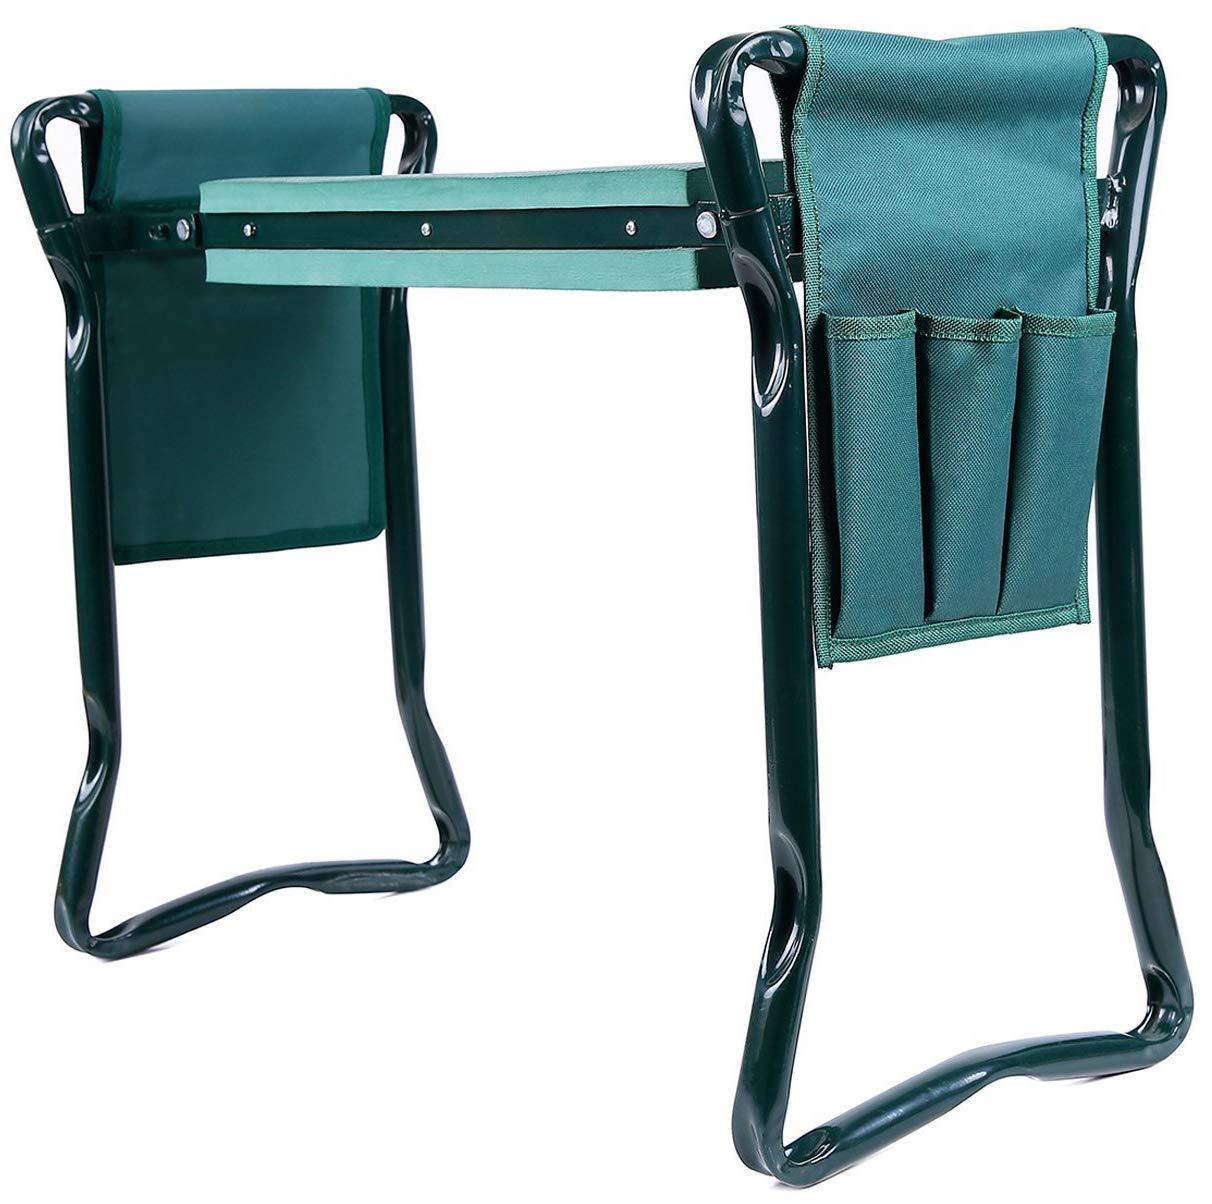 Ohuhu Garden Kneeler and Seat with 2 Bonus Tool Pouches